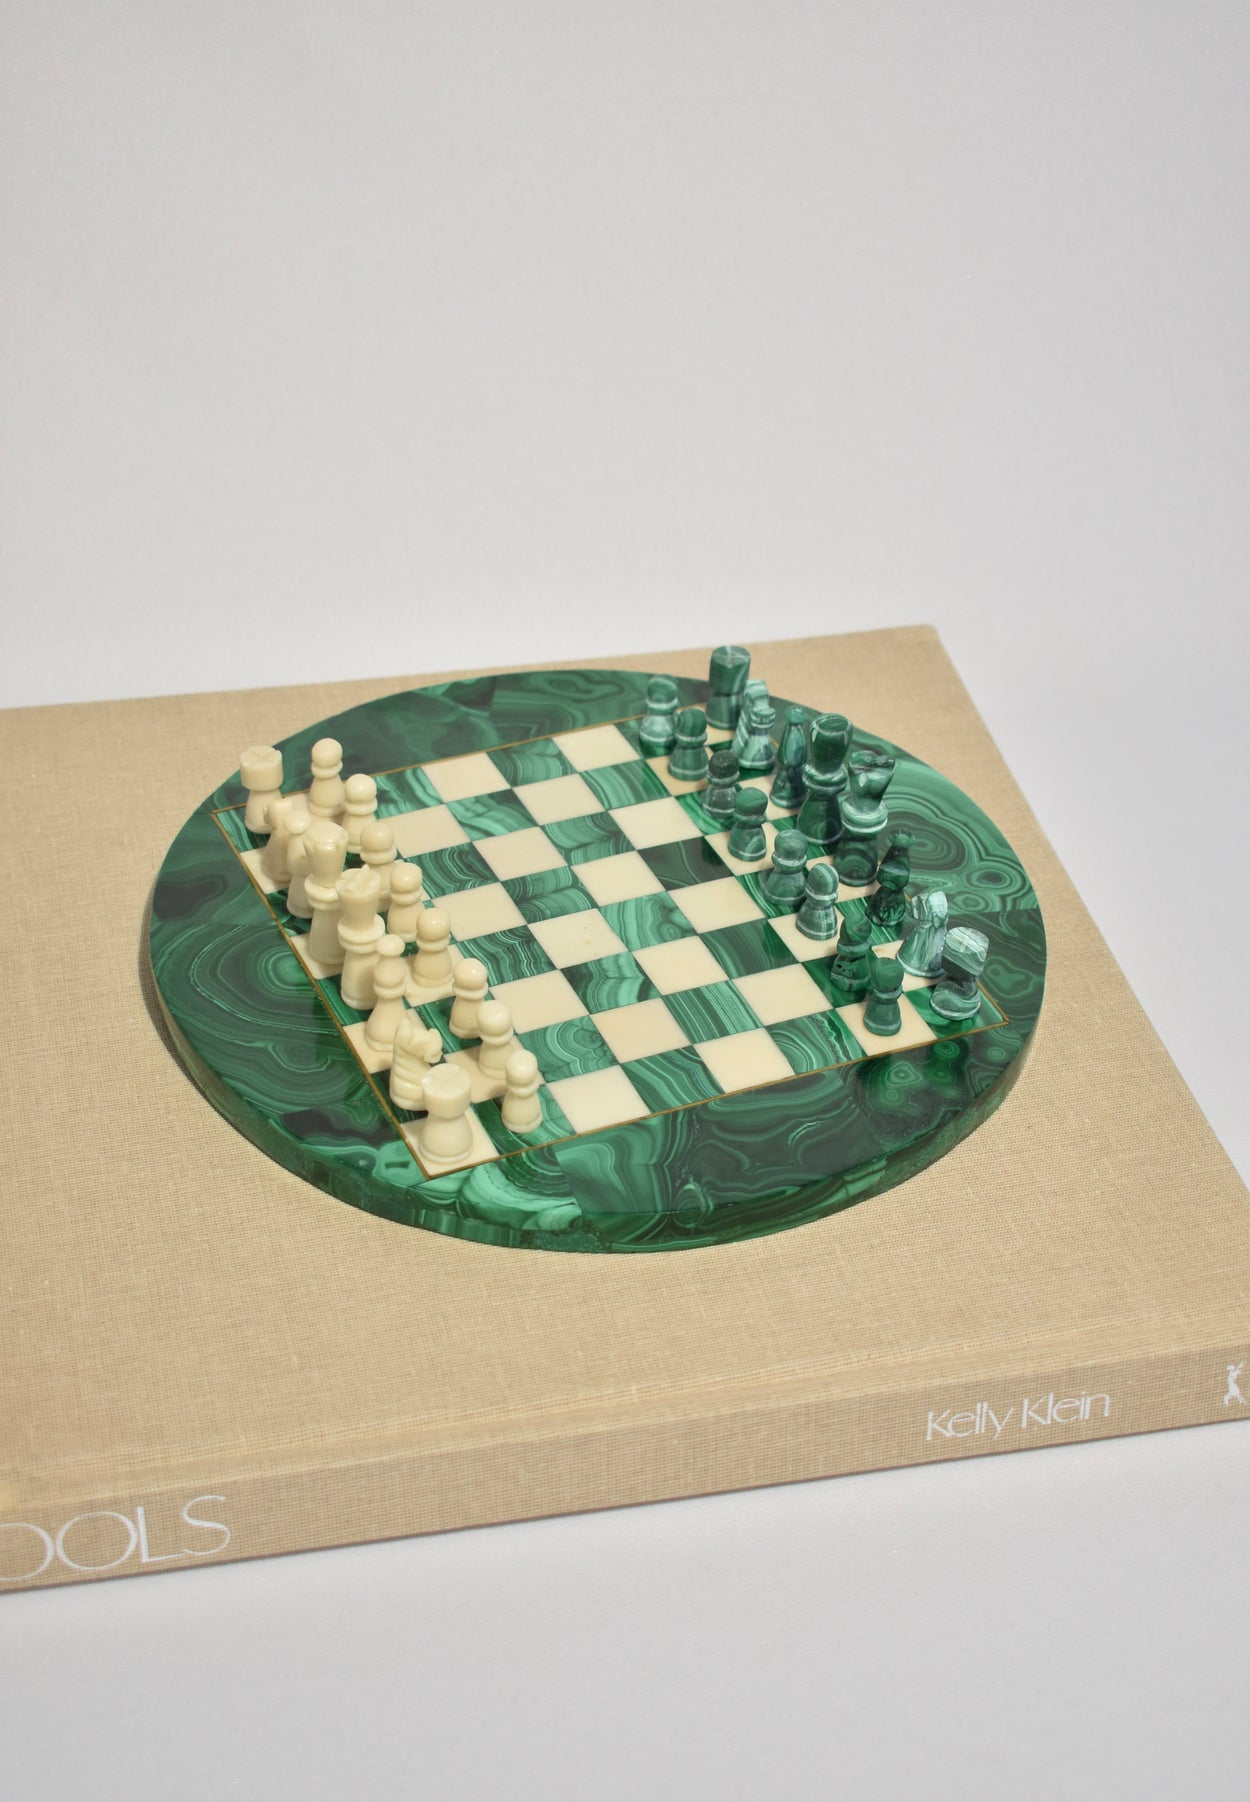 Round Malachite Chess Set